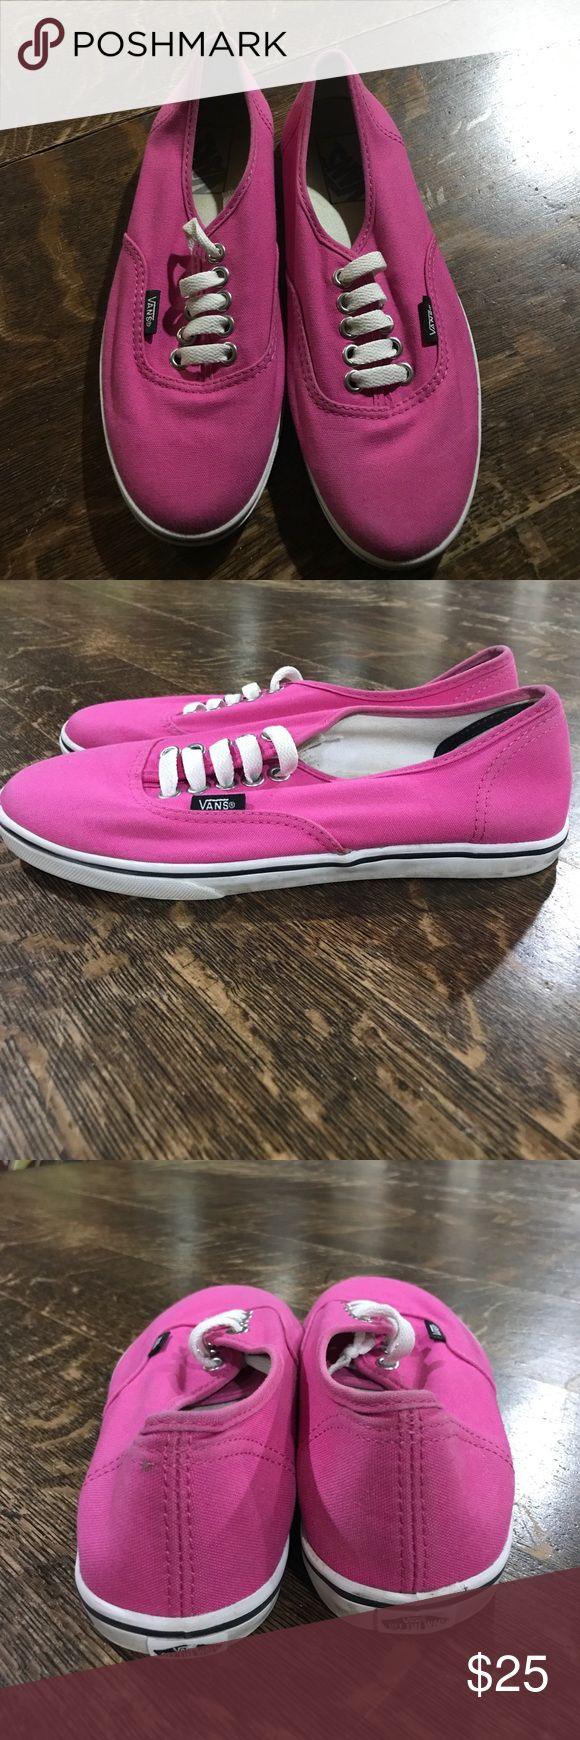 Hot Pink Vans EUC Hot pink vans in excellent used condition. One small spot on the back of the left shoe, see last photograph. The rubber around the shoe can be cleaned up & will look just like new!!! Vans Shoes Sneakers